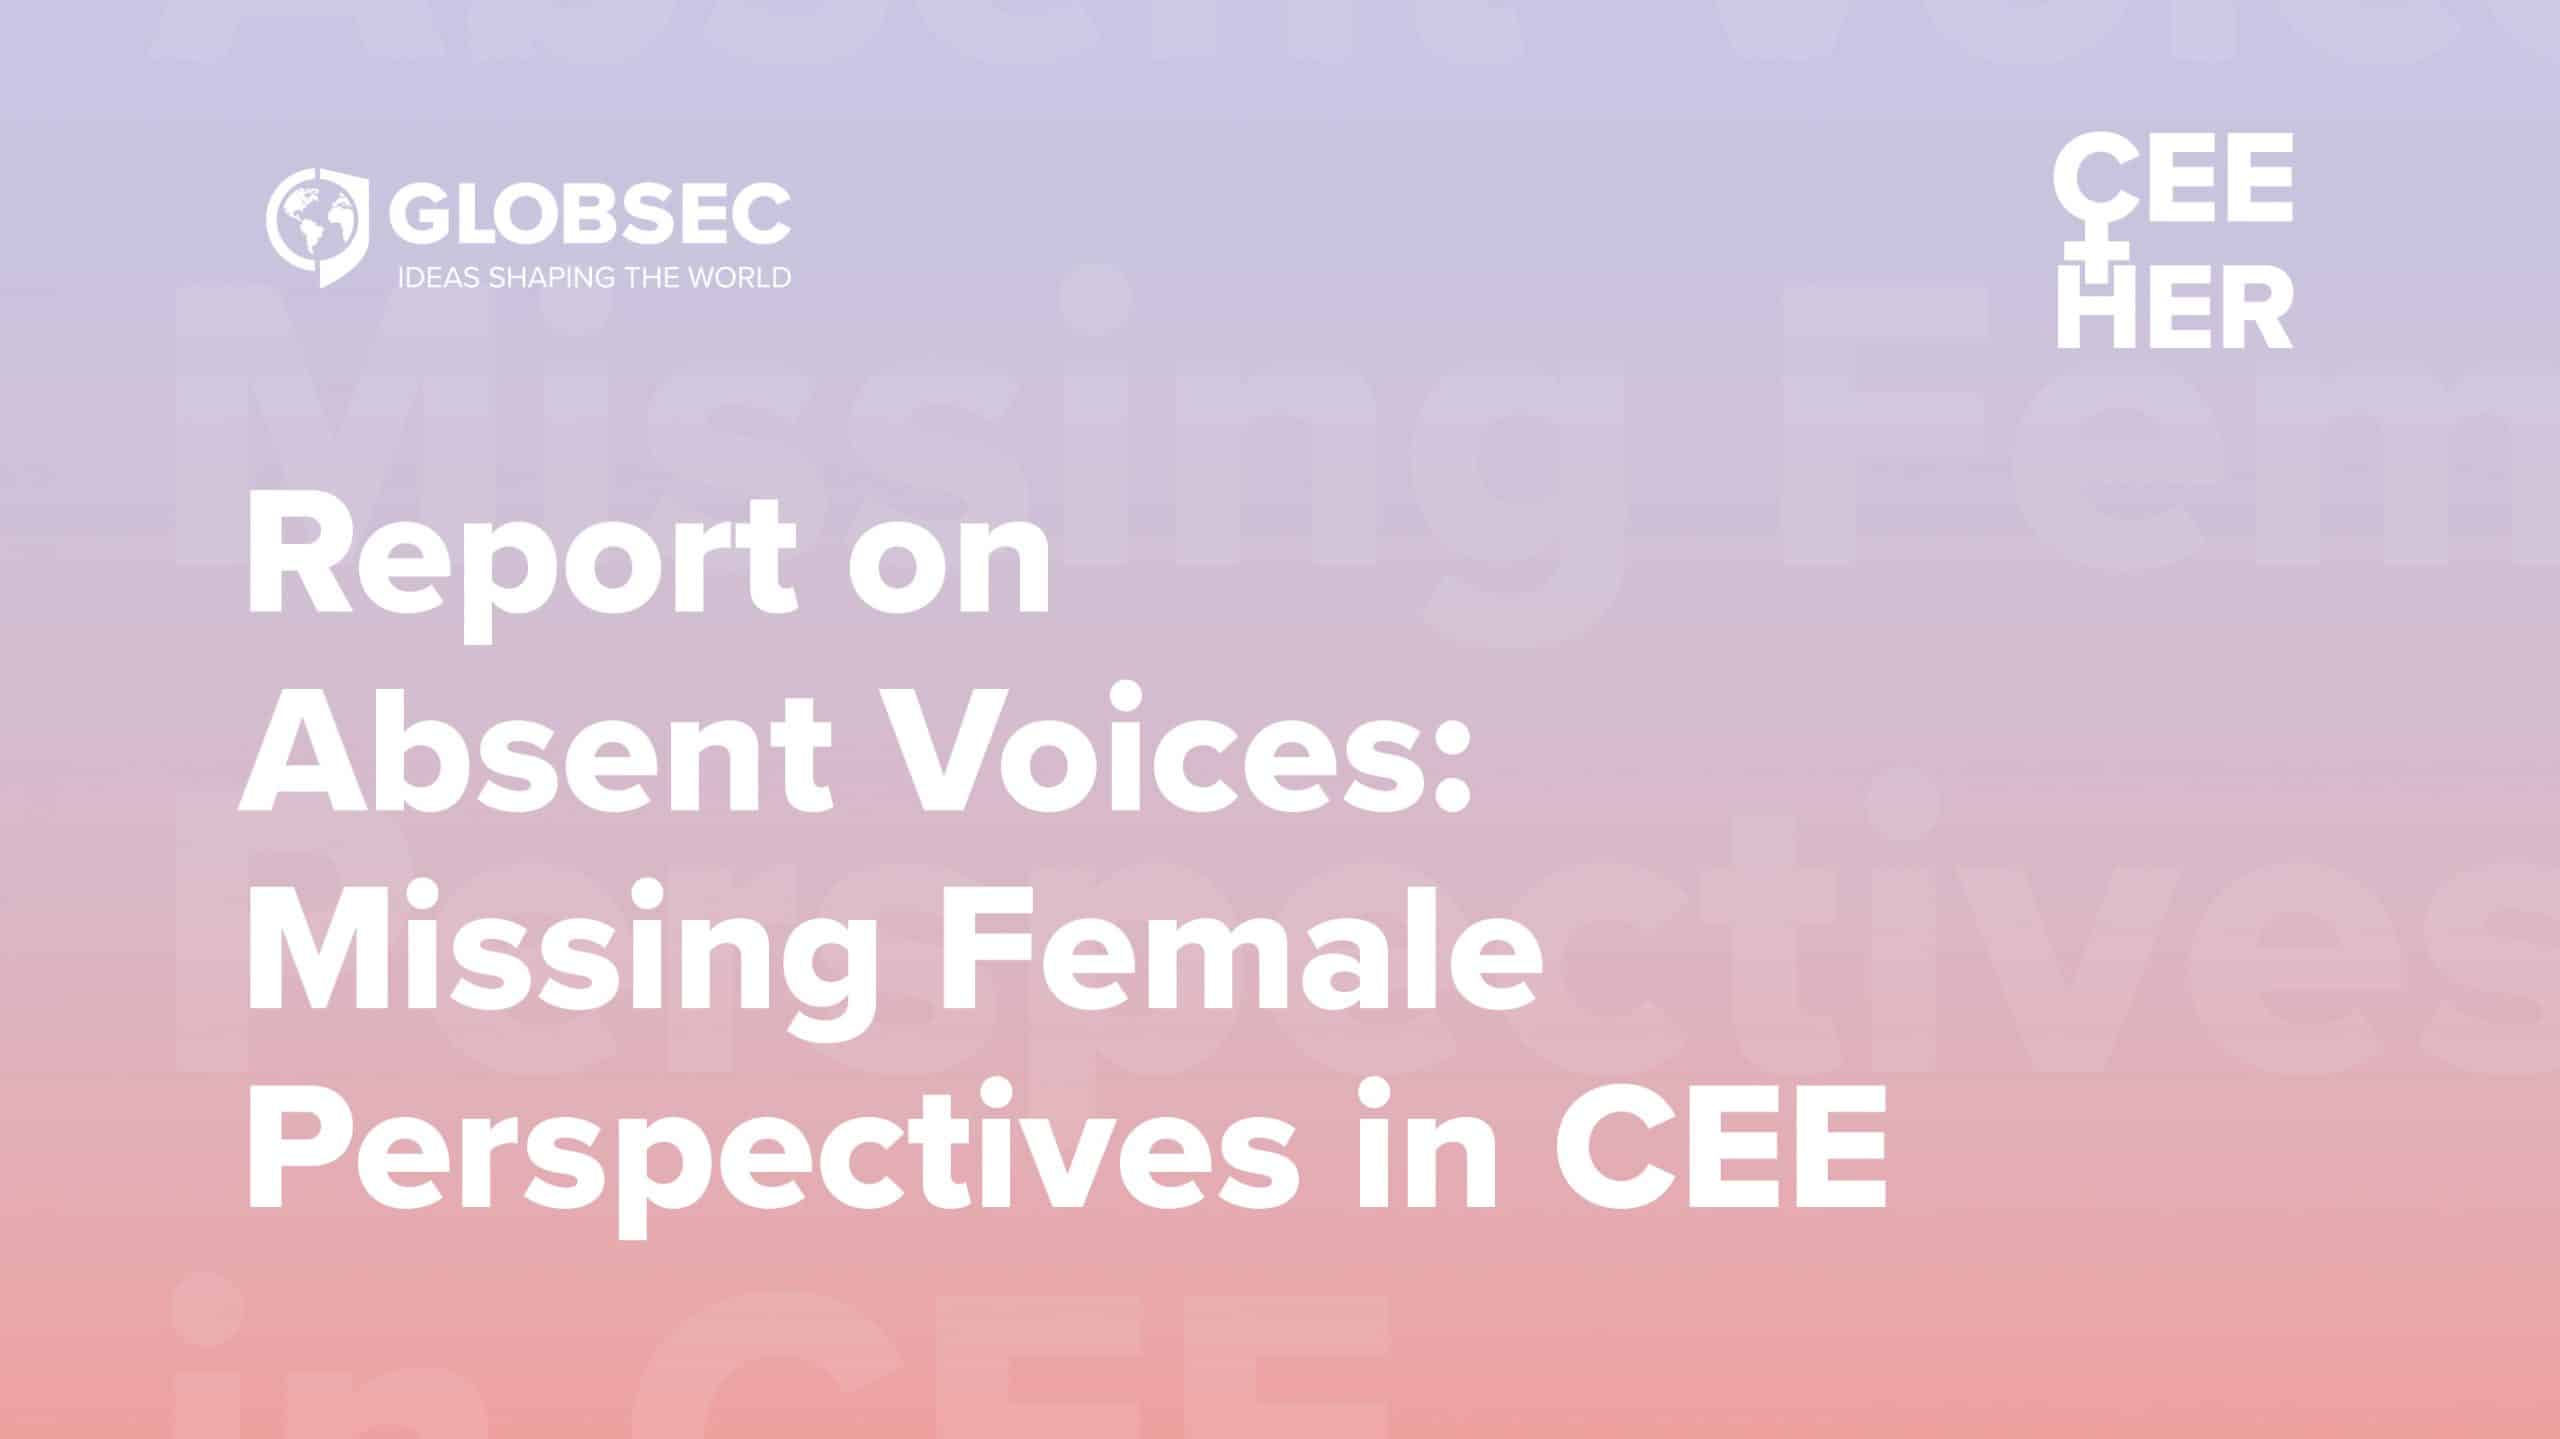 CEEHer Report: Absent Voices: Missing Female Perspective in CEE